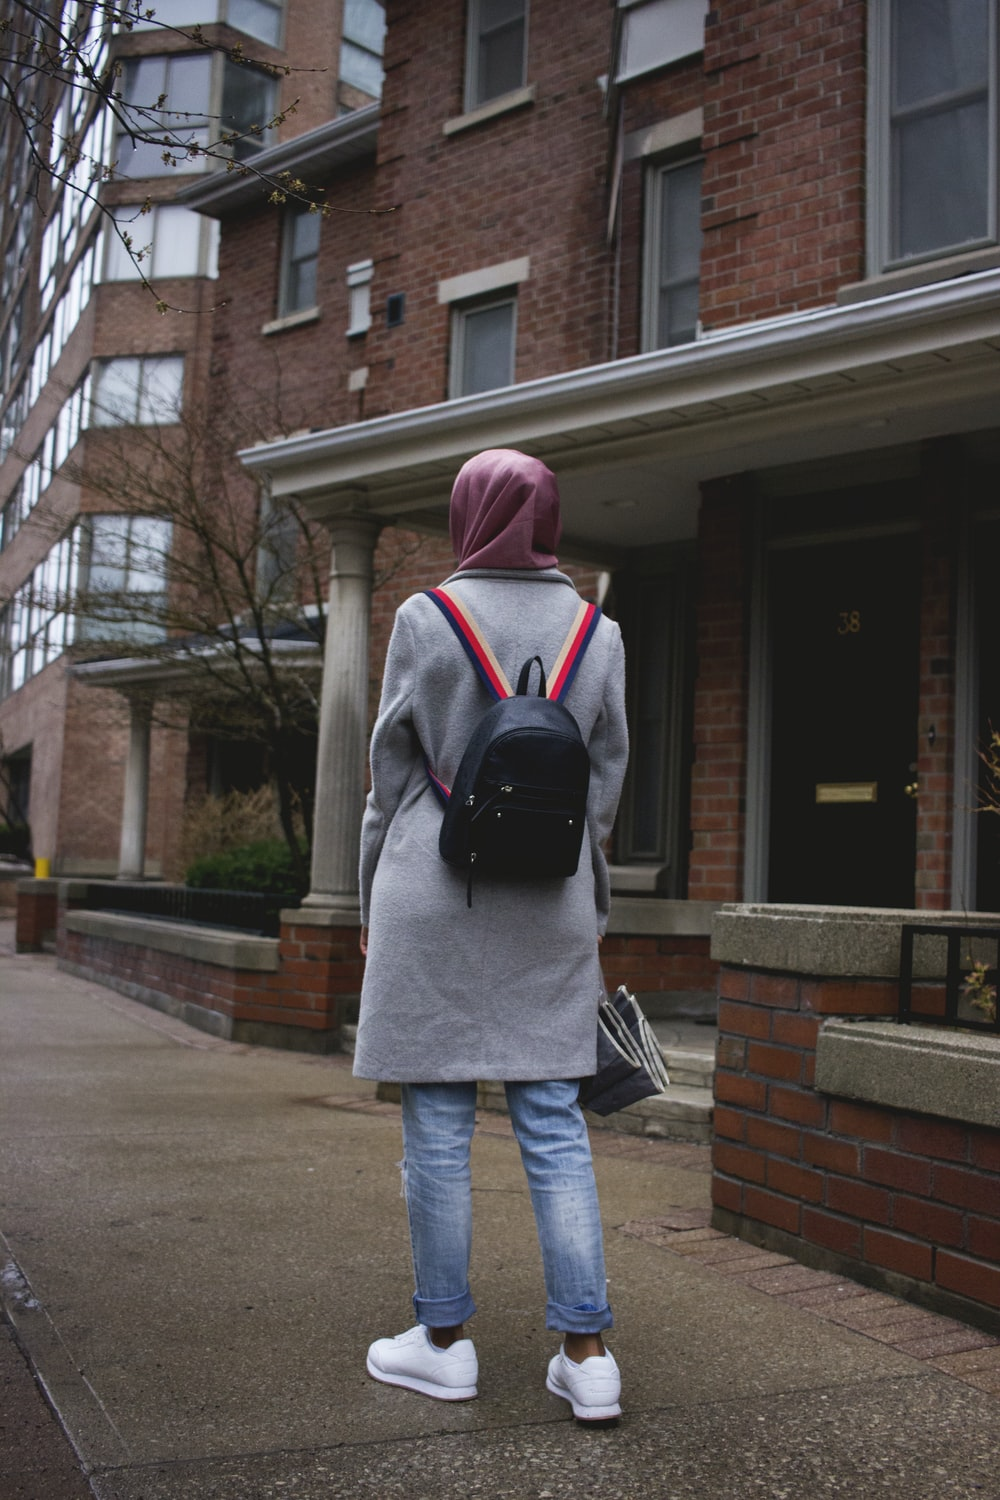 woman in pink hijab headdress, gray coat, blue jeans, white shoes, and black backpack standing near house